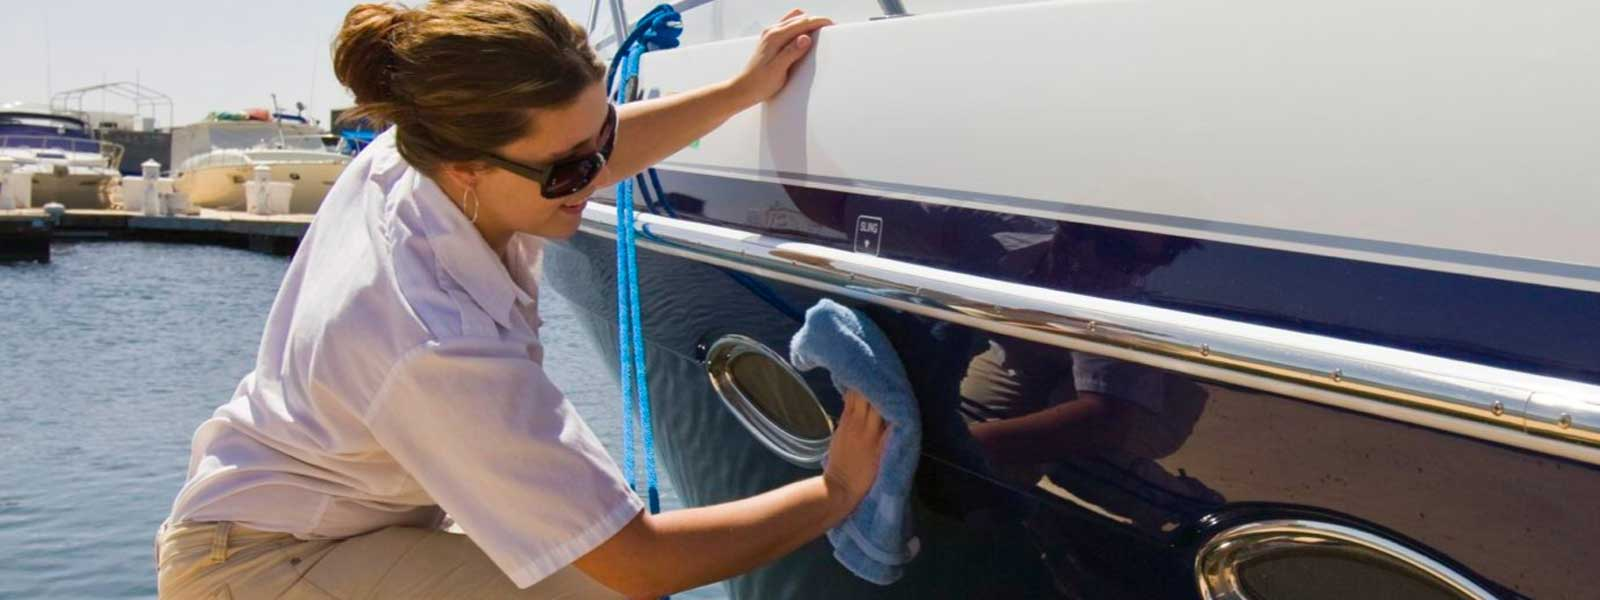 Boat Maintenance for Boat Life Extension